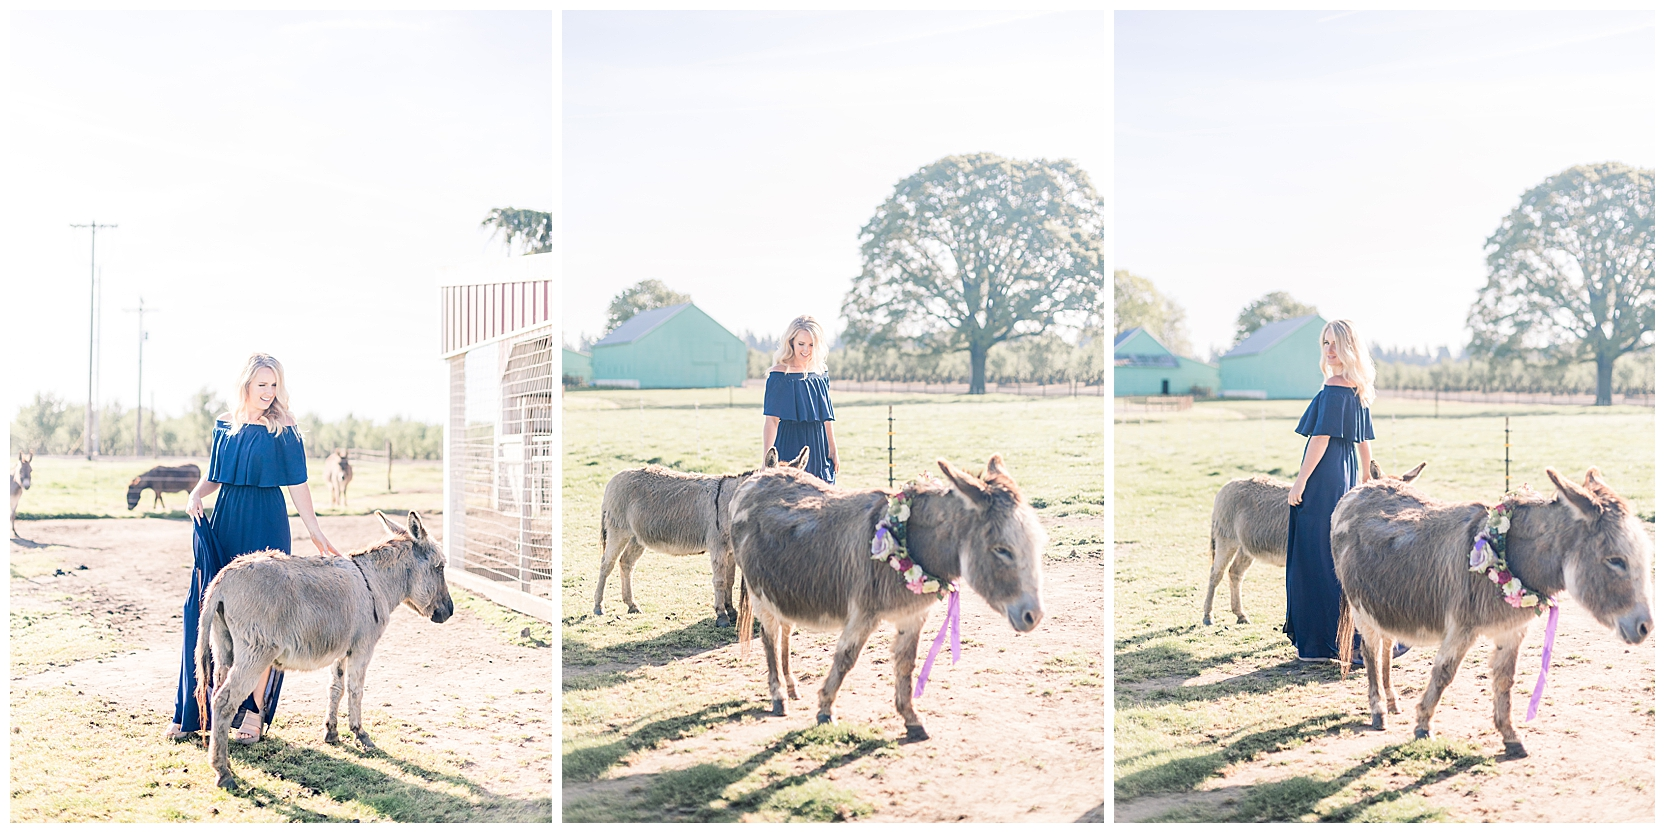 jessicafredericks_st petersburg_wedding_photographer_bridesmaid_farm_donkey_flower crown_inspo_0005.jpg